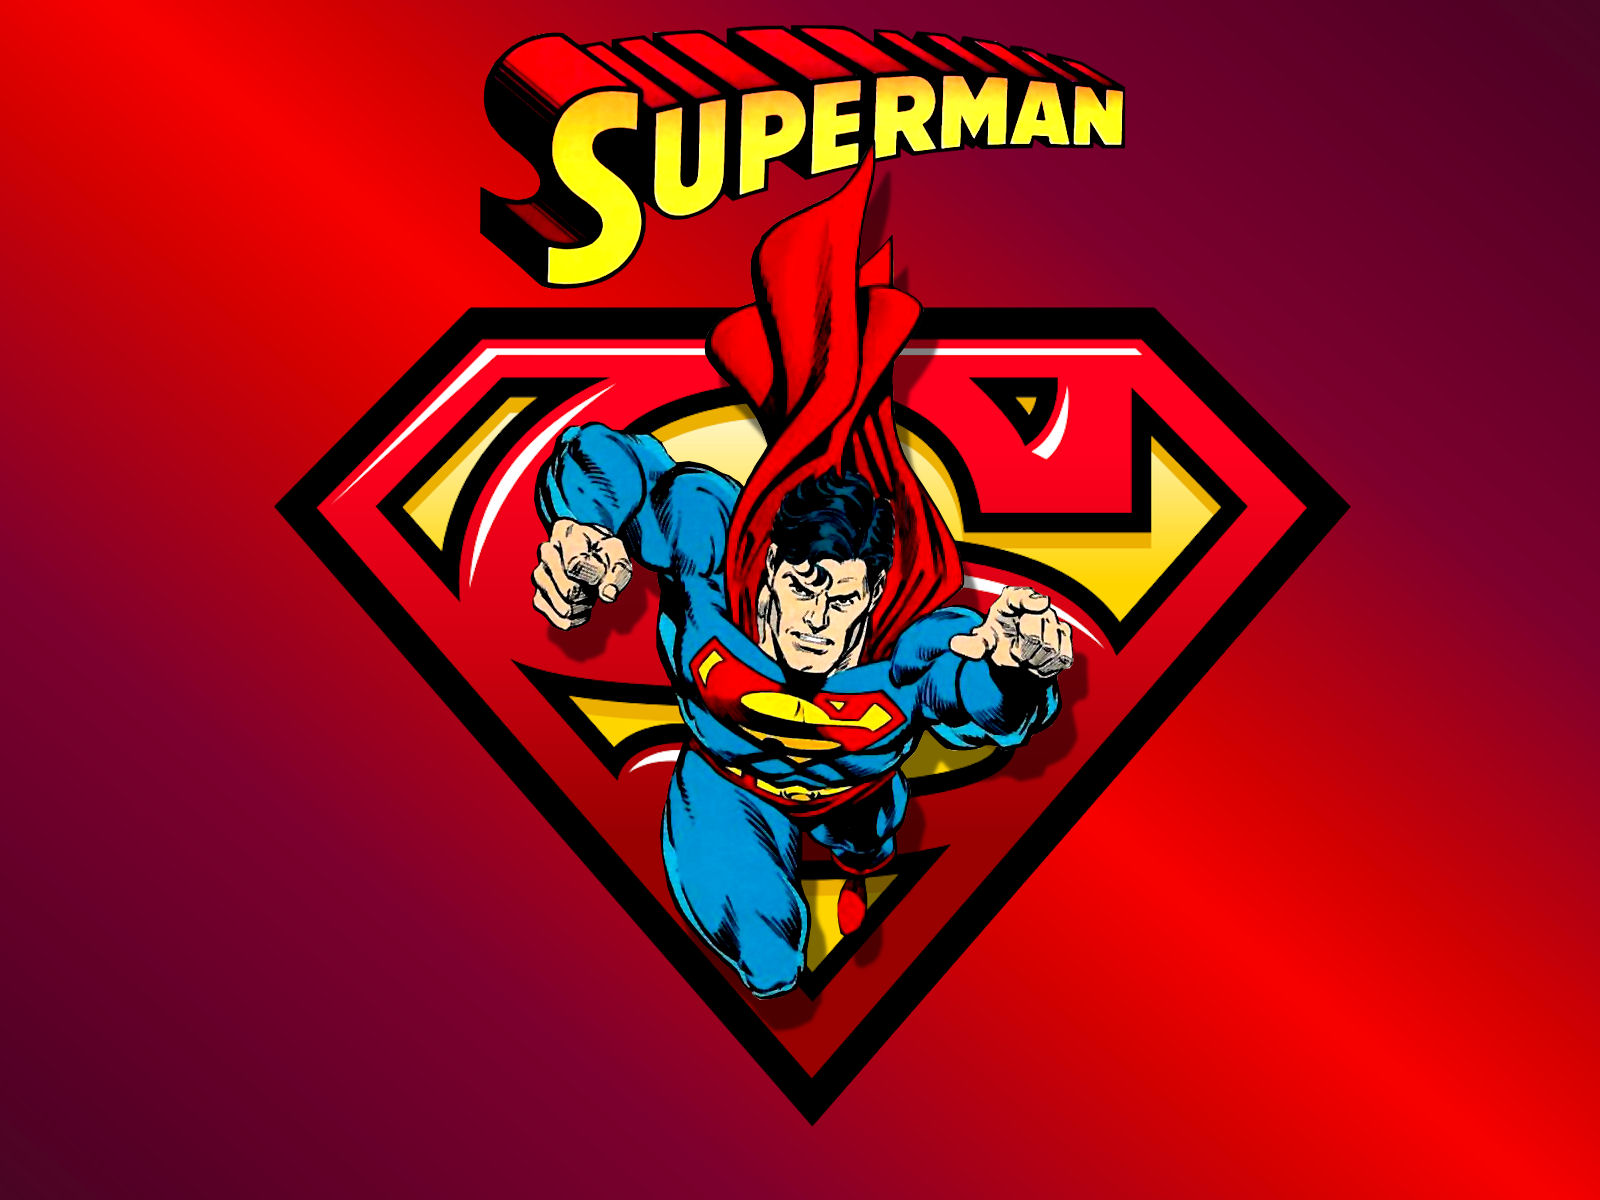 superman wallpaper 336 1600x1200 px ~ hdwallsource